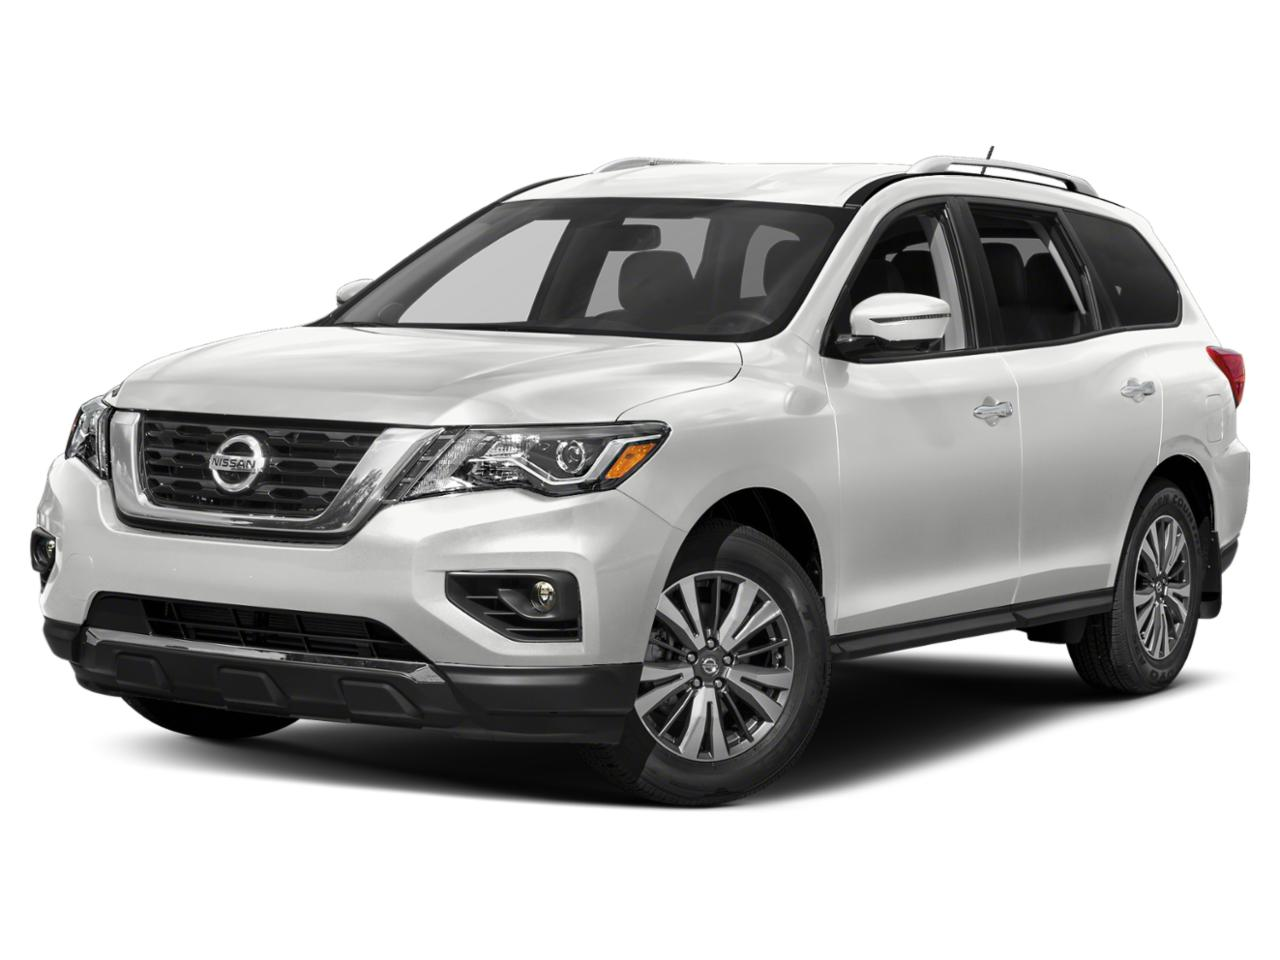 2020 Nissan Pathfinder Vehicle Photo in Owensboro, KY 42301